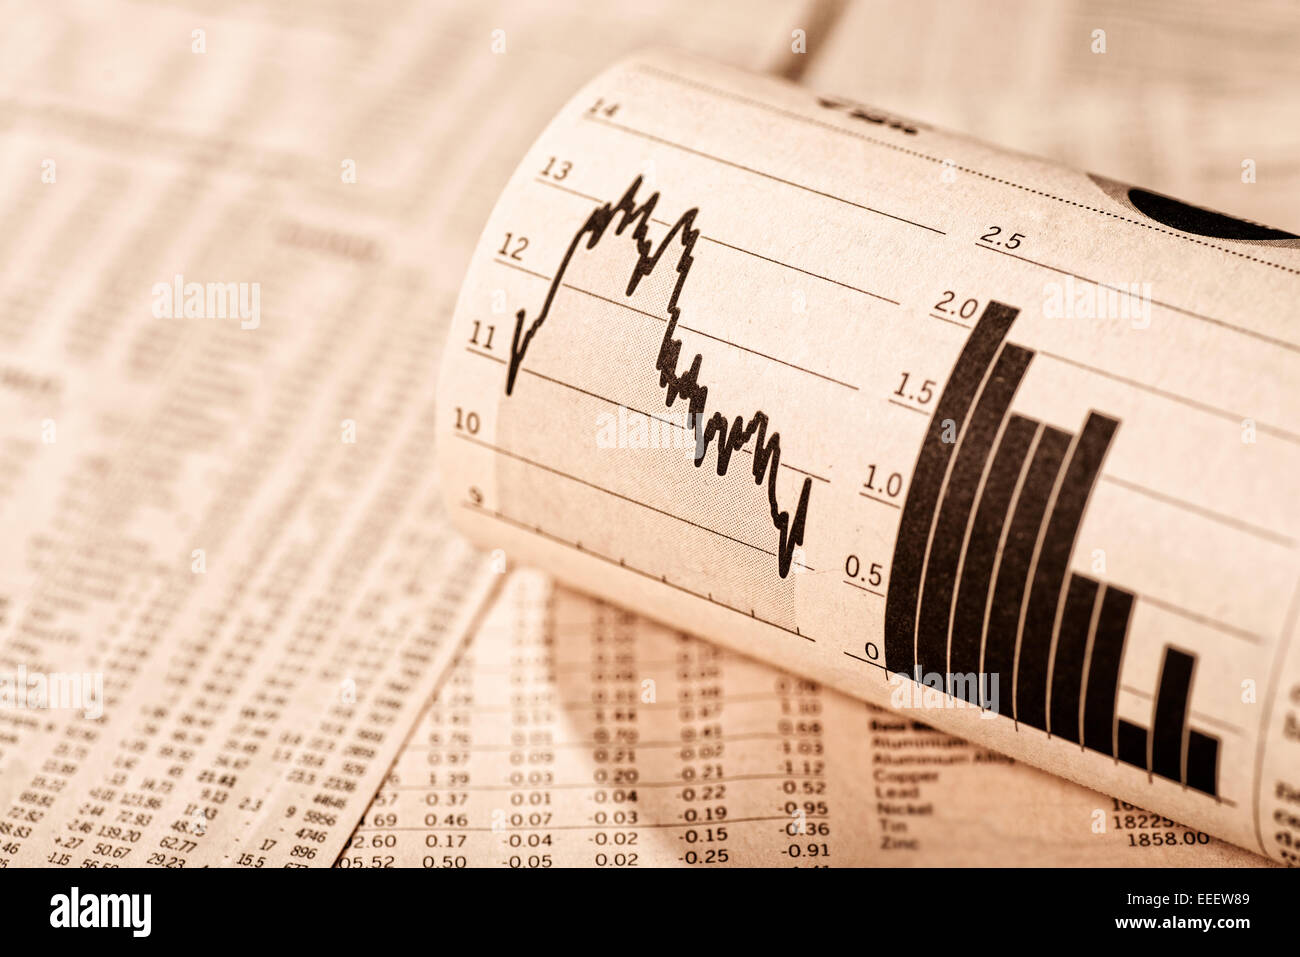 Exchange rate tables and diagrams show different stock prices. - Stock Image